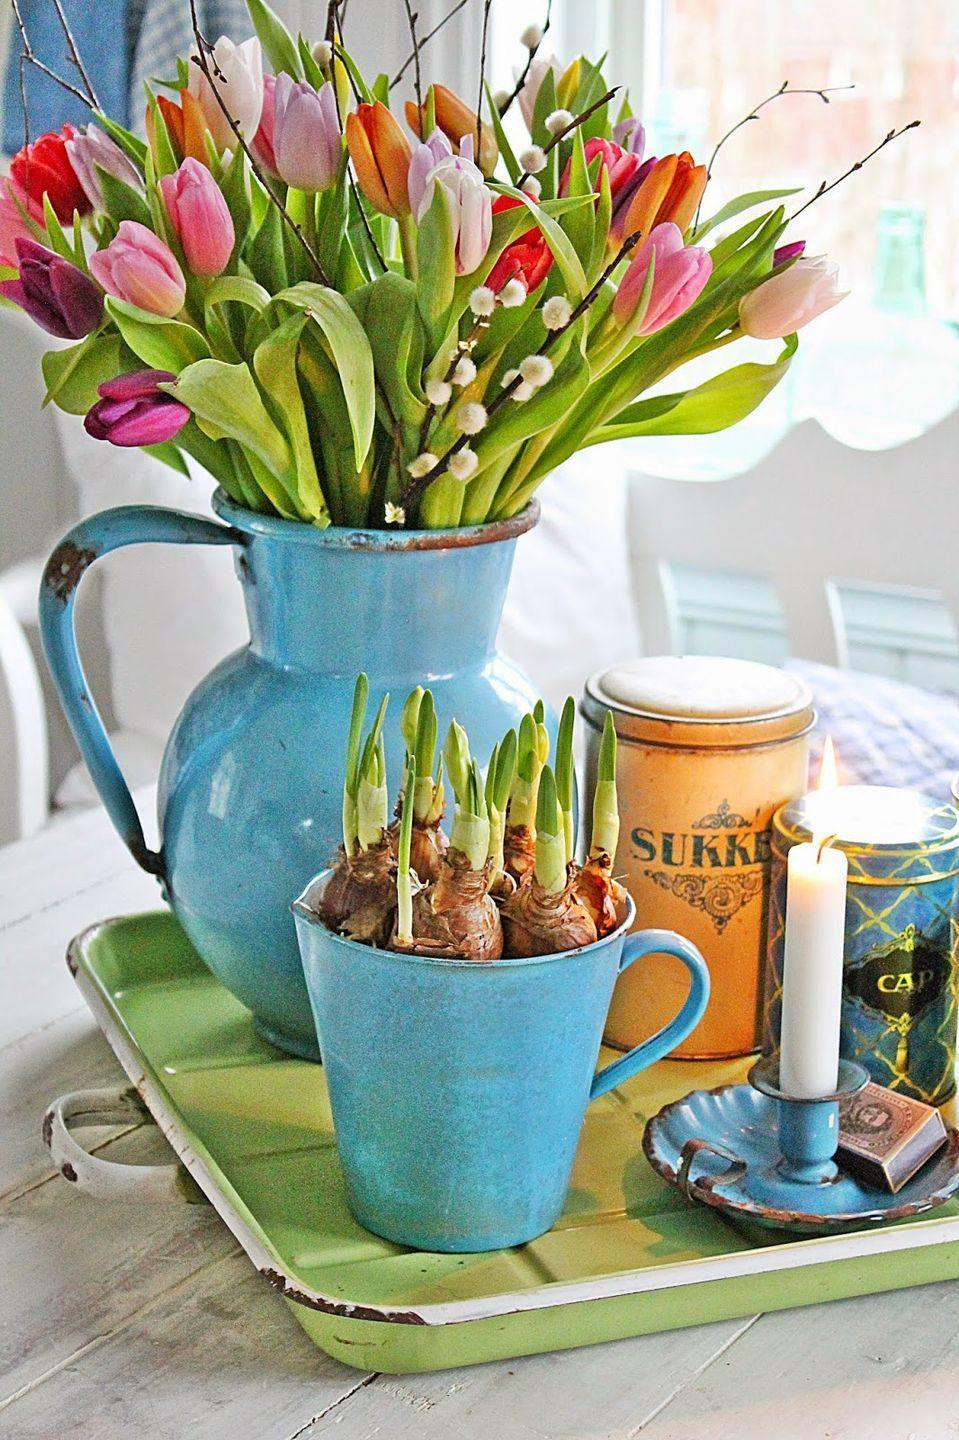 """<p>For an adorable duo, place cut flowers in a large vase or pitcher. Then pair the bouquet with bulbs planted in a matching mug or bowl.</p><p><em><u><a href=""""http://vibekedesign.blogspot.nl/2015/02/fargefest.html"""" rel=""""nofollow noopener"""" target=""""_blank"""" data-ylk=""""slk:Get the tutorial from Vibeke Design »"""" class=""""link rapid-noclick-resp"""">Get the tutorial from Vibeke Design »</a></u></em></p>"""